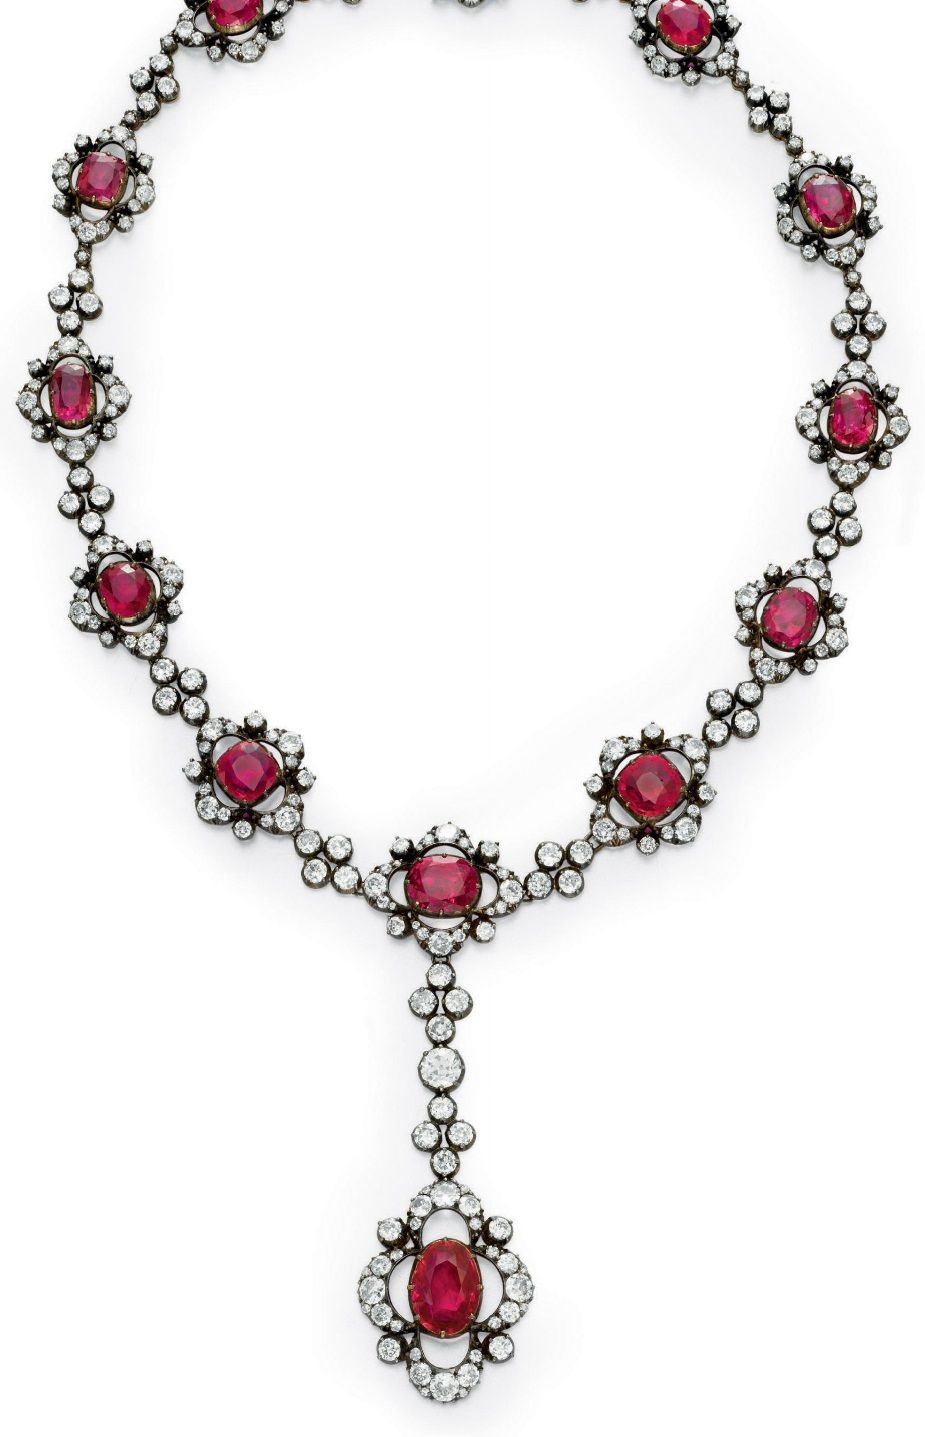 AN ANTIQUE RUBY AND DIAMOND NECKLACE. Suspending a bezel-set oval-cut ruby within an openwork old European and single-cut diamond scalloped surround, from a line of circular and old European-cut diamonds, to the neckchain, designed as a graduated series of bezel-set cushion-cut rubies, each within an openwork circular, old European and single-cut diamond scalloped surround, spaced by circular and old European-cut diamond clusters, mounted in silver-topped gold, circa 1880. #antique #necklace